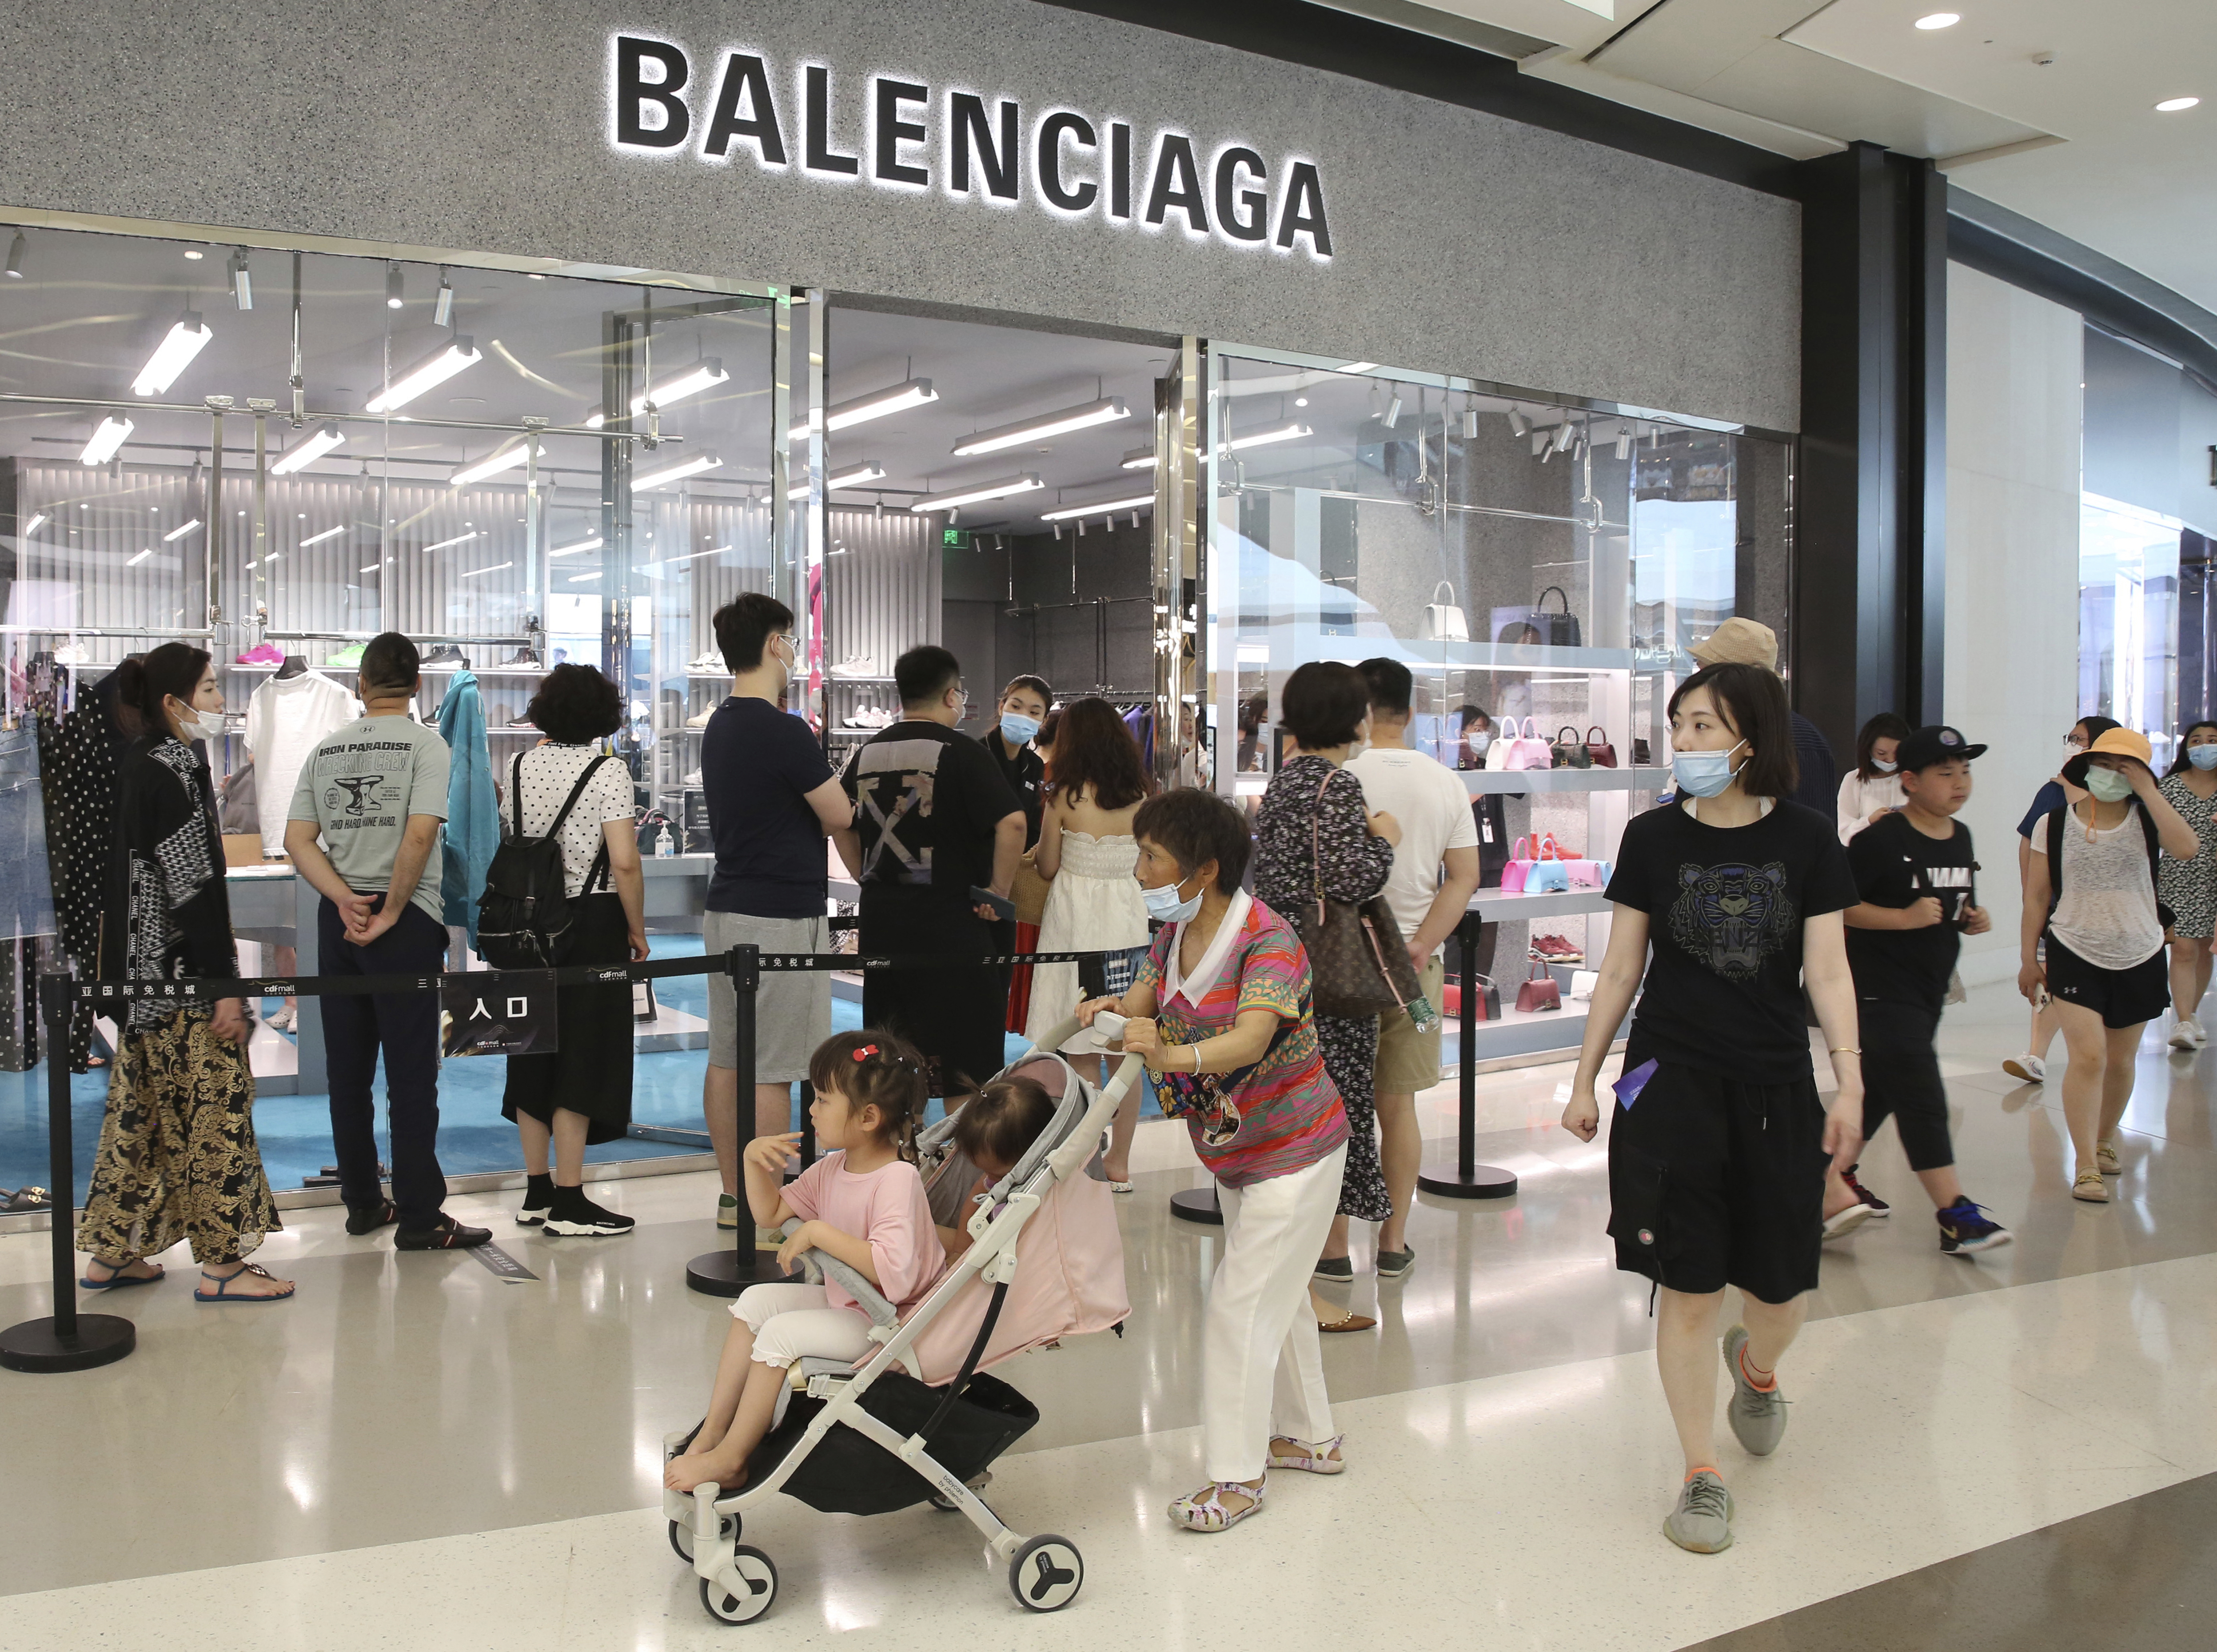 ManMany people gather to buy duty-free goods at a duty-free shop in Sanya, Hainan Province on May 1, 2021. The consecutive holidays of International Workers' Day (May Day) continued until May 5th. y people gather to buy duty-free goods at a duty-free shop in Sanya City, Hainan Province on May 1, 2021. The consecutive holidays of International Workers' Day (May Day) will continue until May 5th. ( The Yomiuri Shimbun via AP Images )